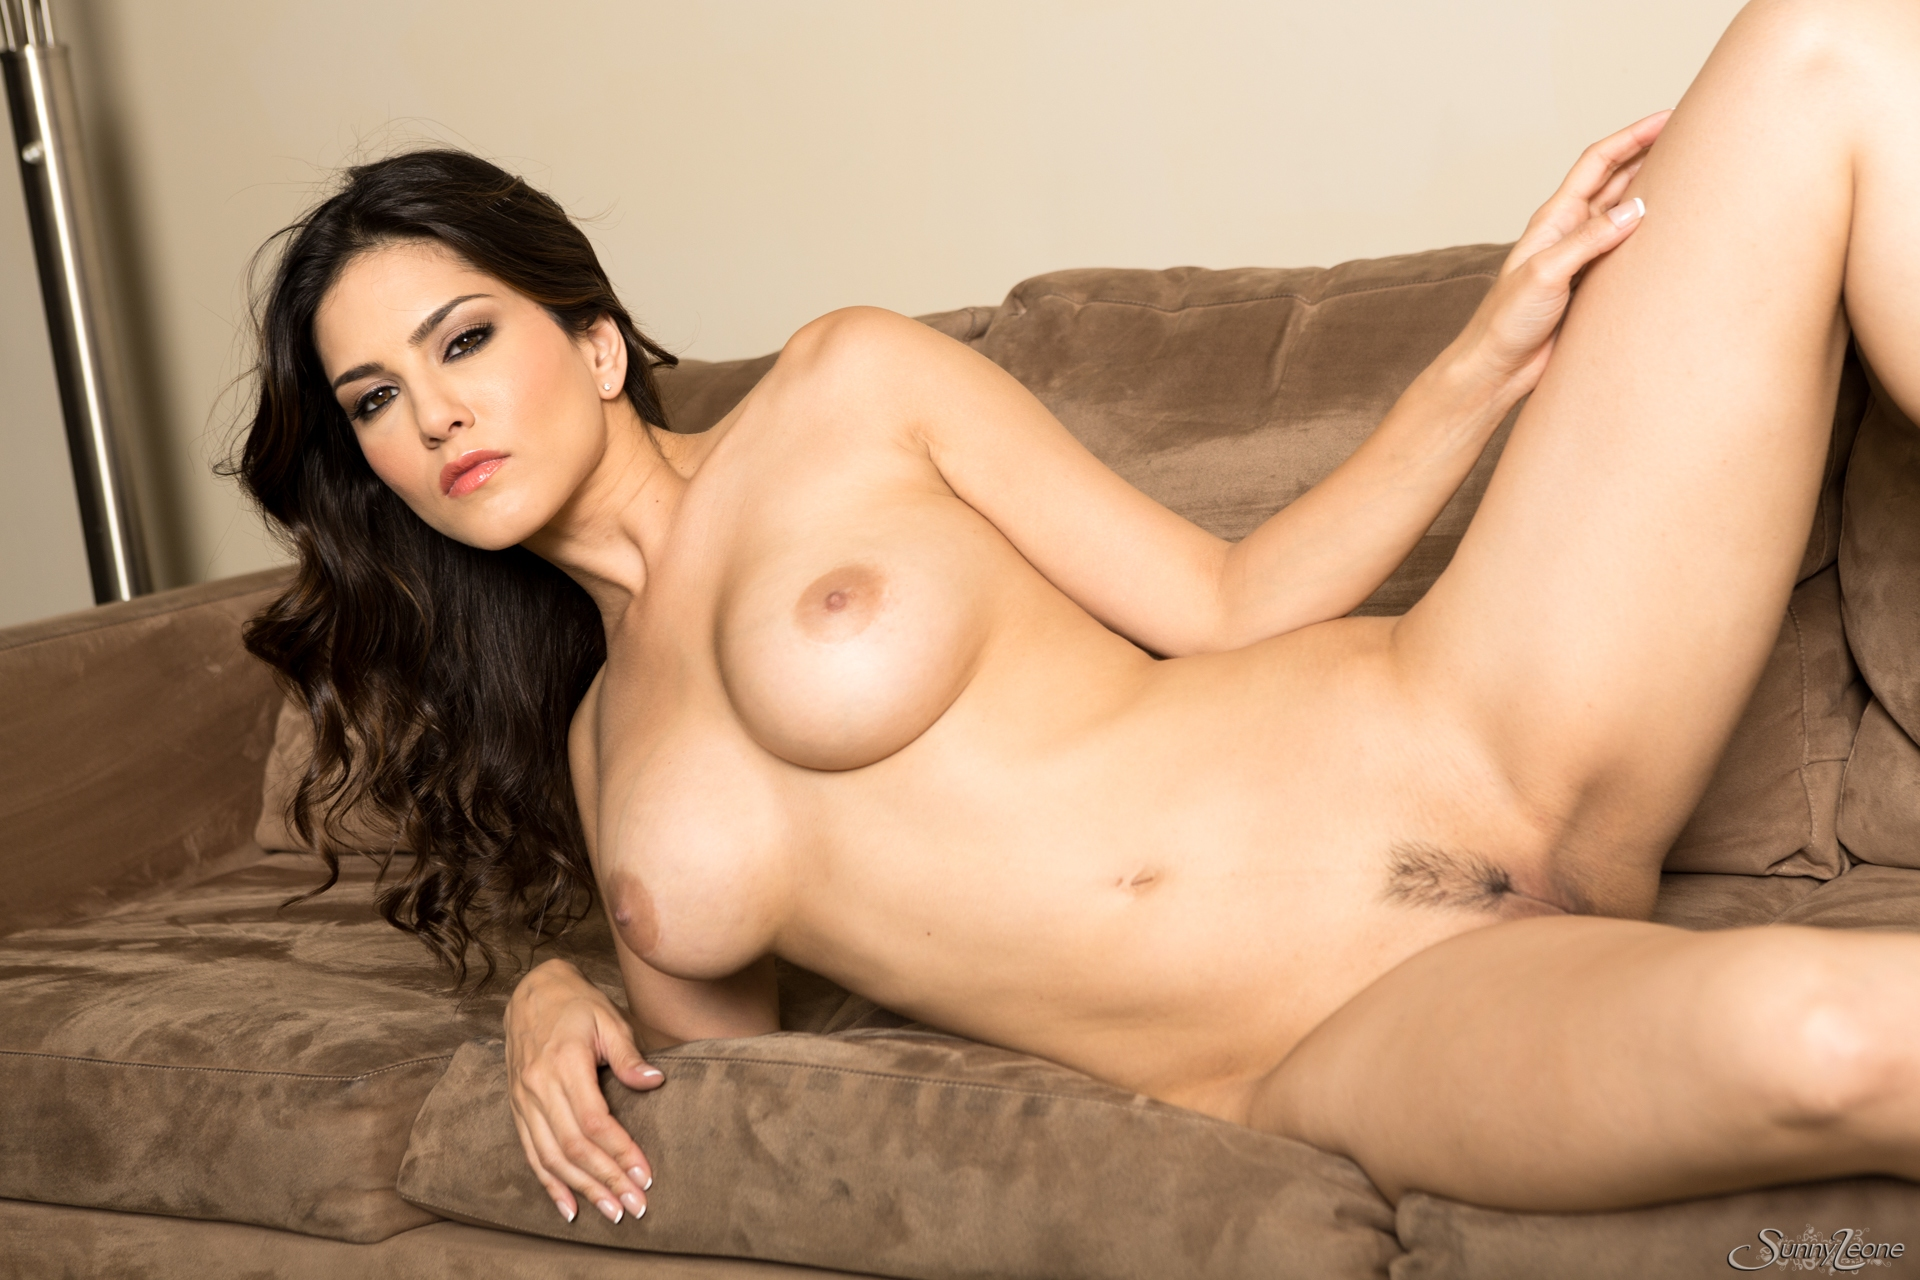 Sunny leone xxx nude can ask